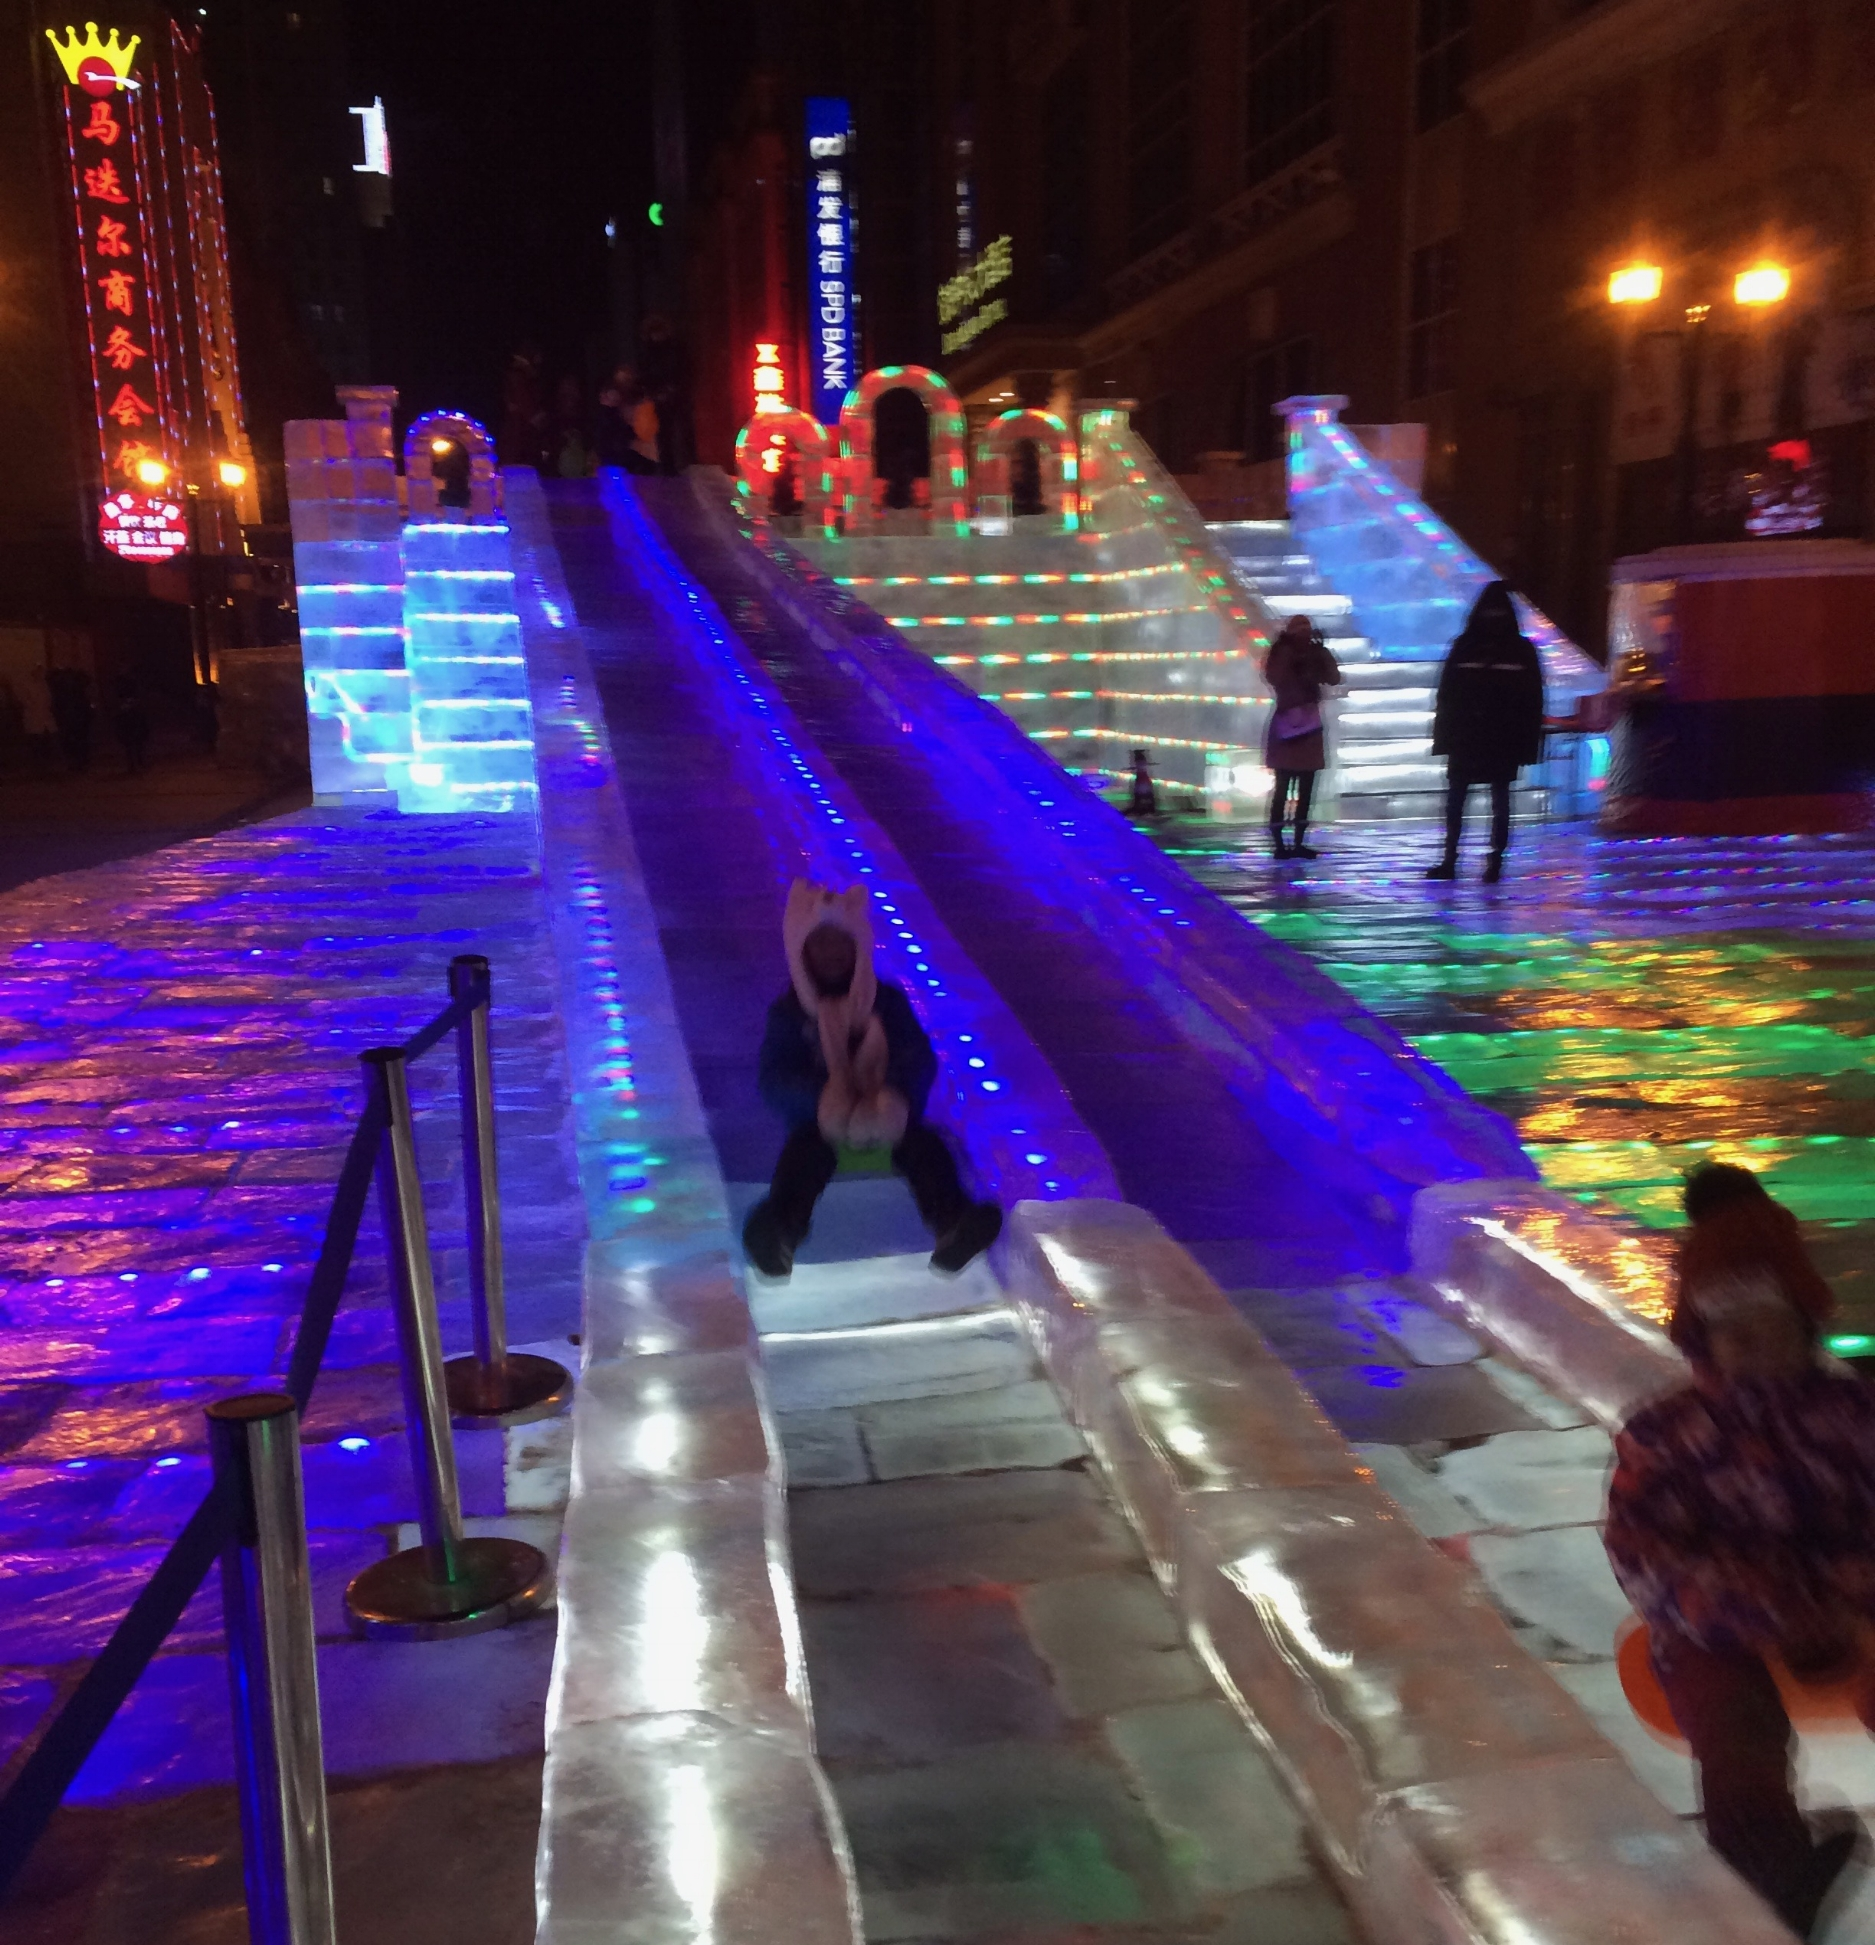 One of the many slides through and around the giant ice sculptures